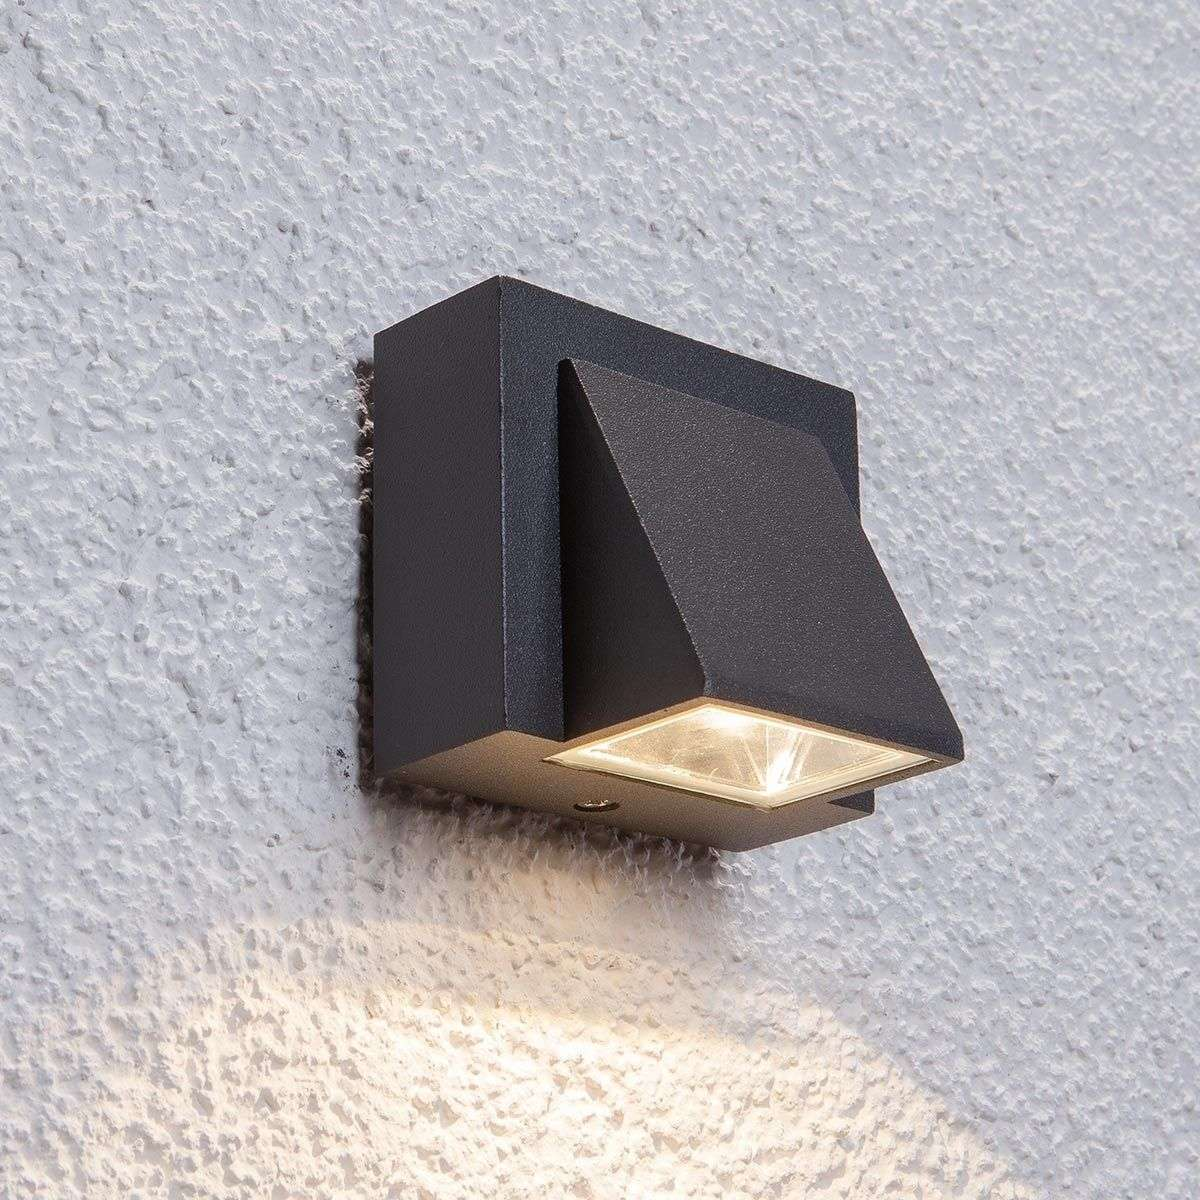 Marik led outdoor light lights marik led outdoor light workwithnaturefo